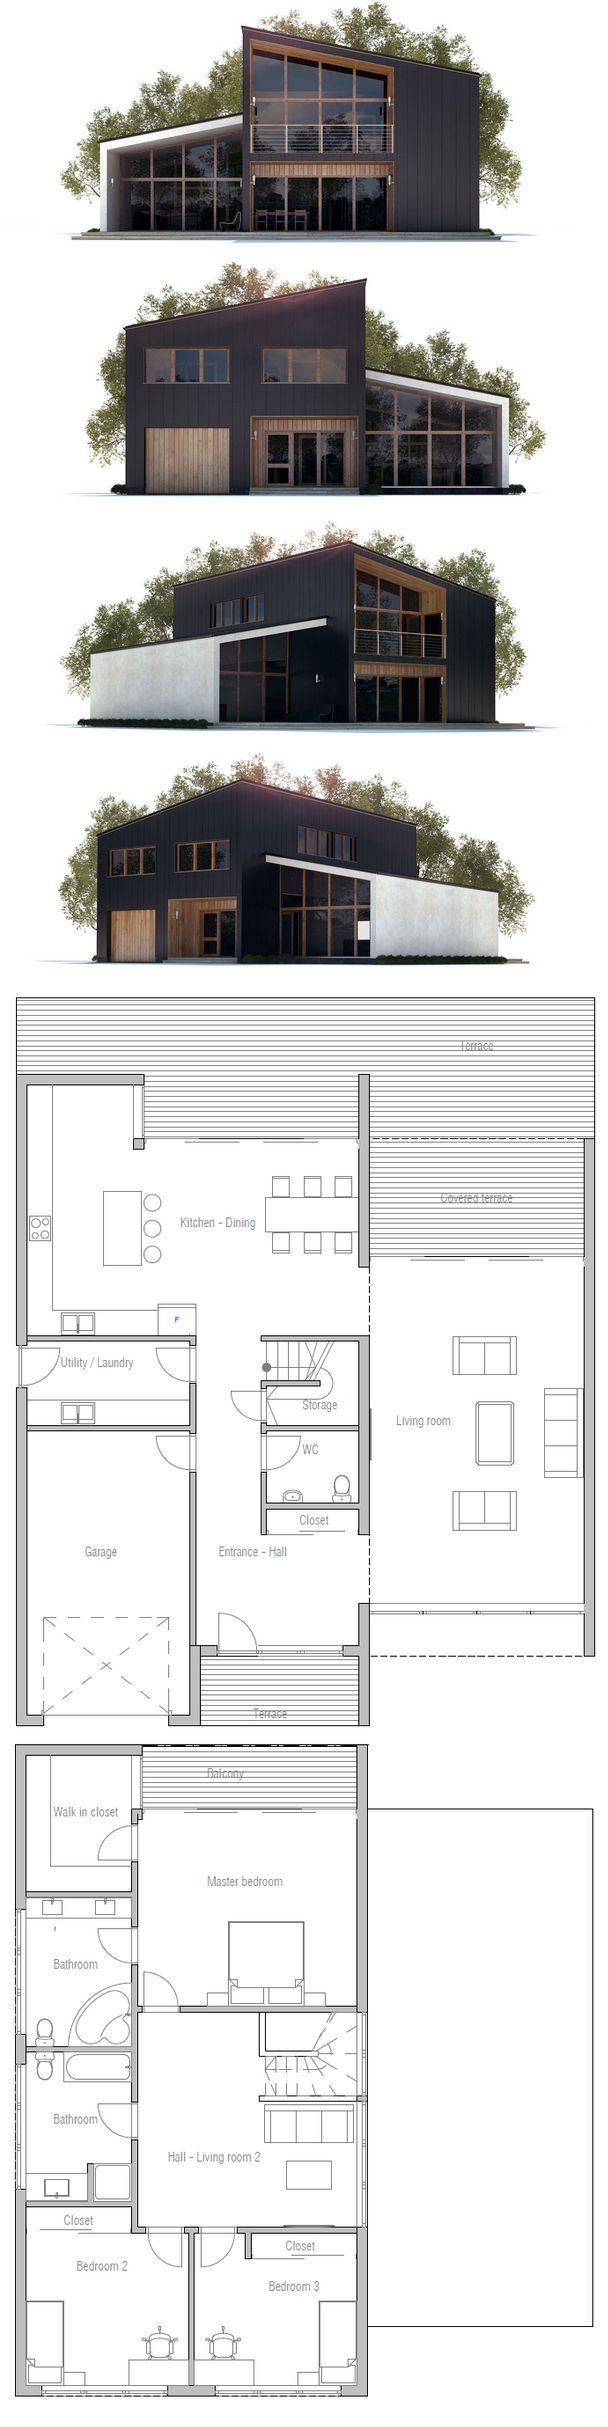 House plan in modern architecture three bedrooms garage two living areas high ceiling in the - House plans high ceilings ...